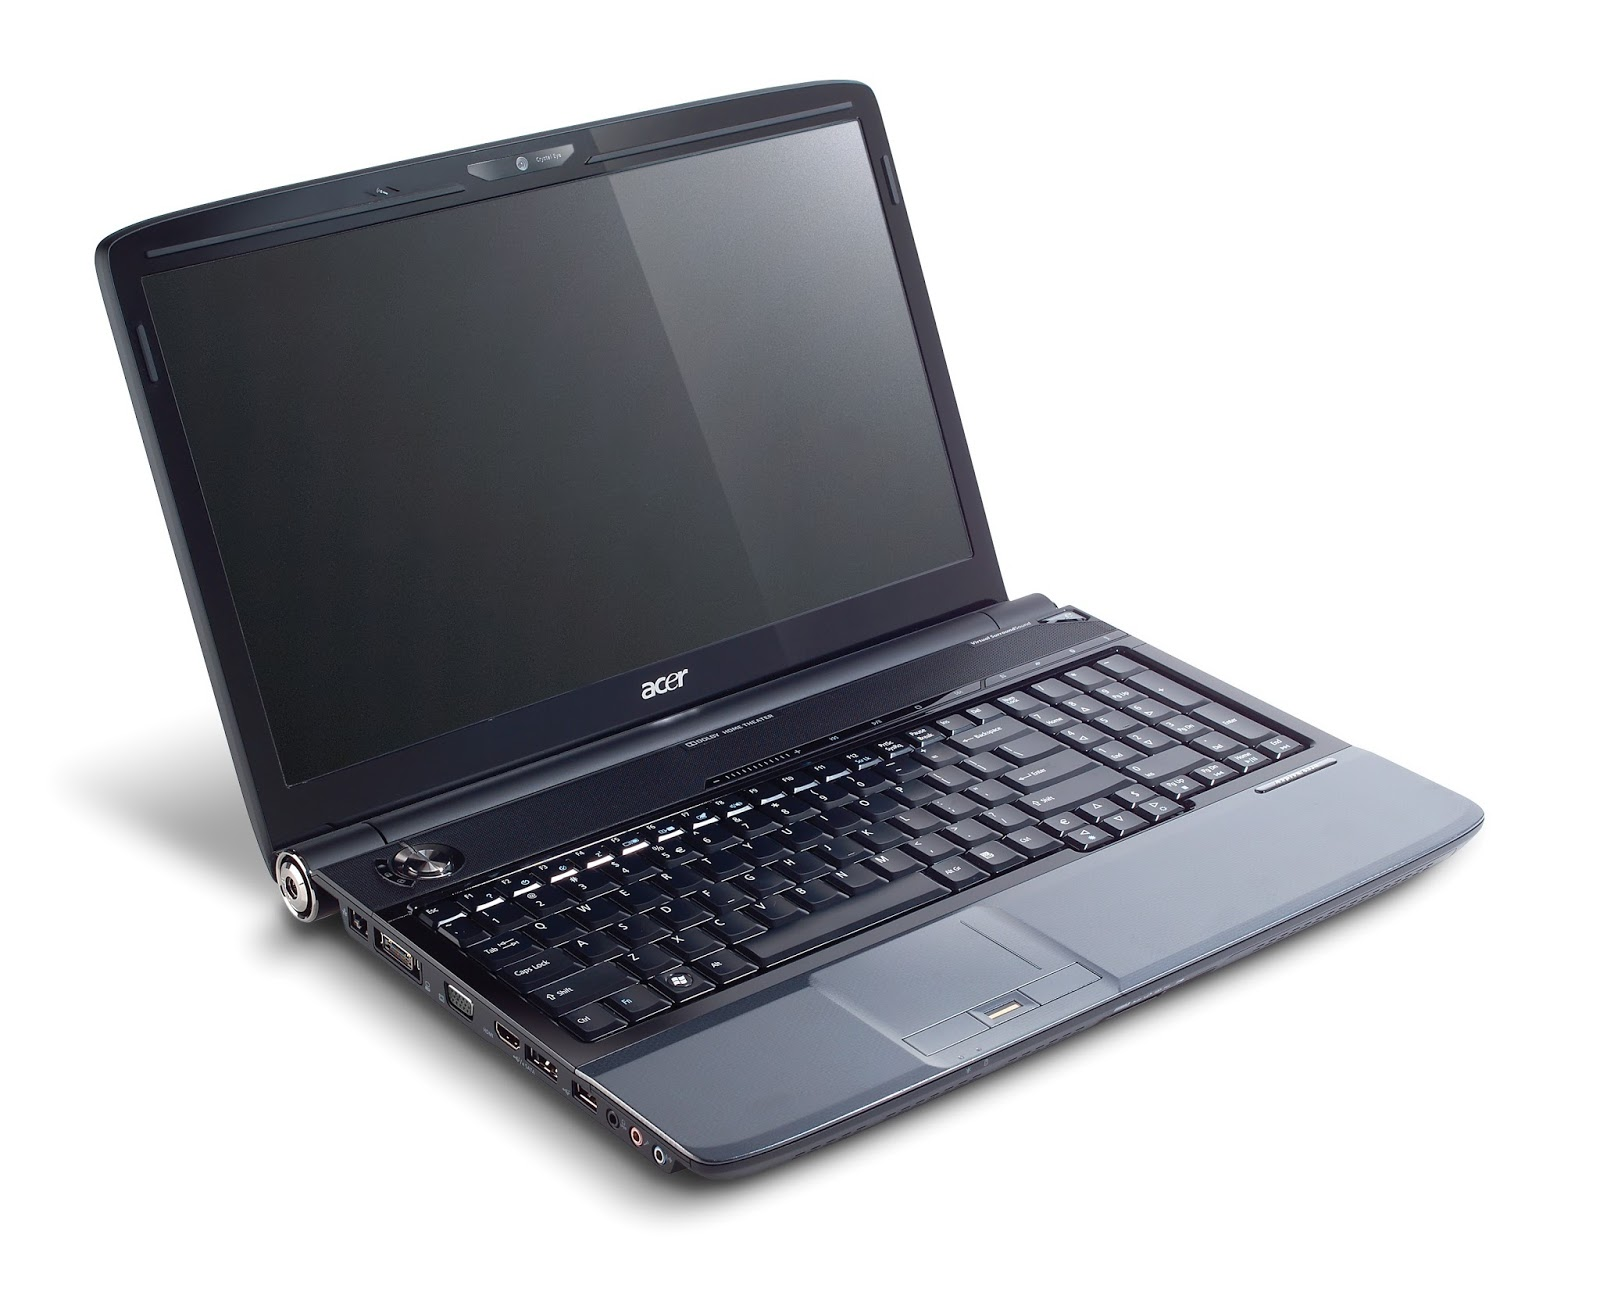 Acer Aspire 7320 Foxconn Bluetooth Windows 8 X64 Driver Download